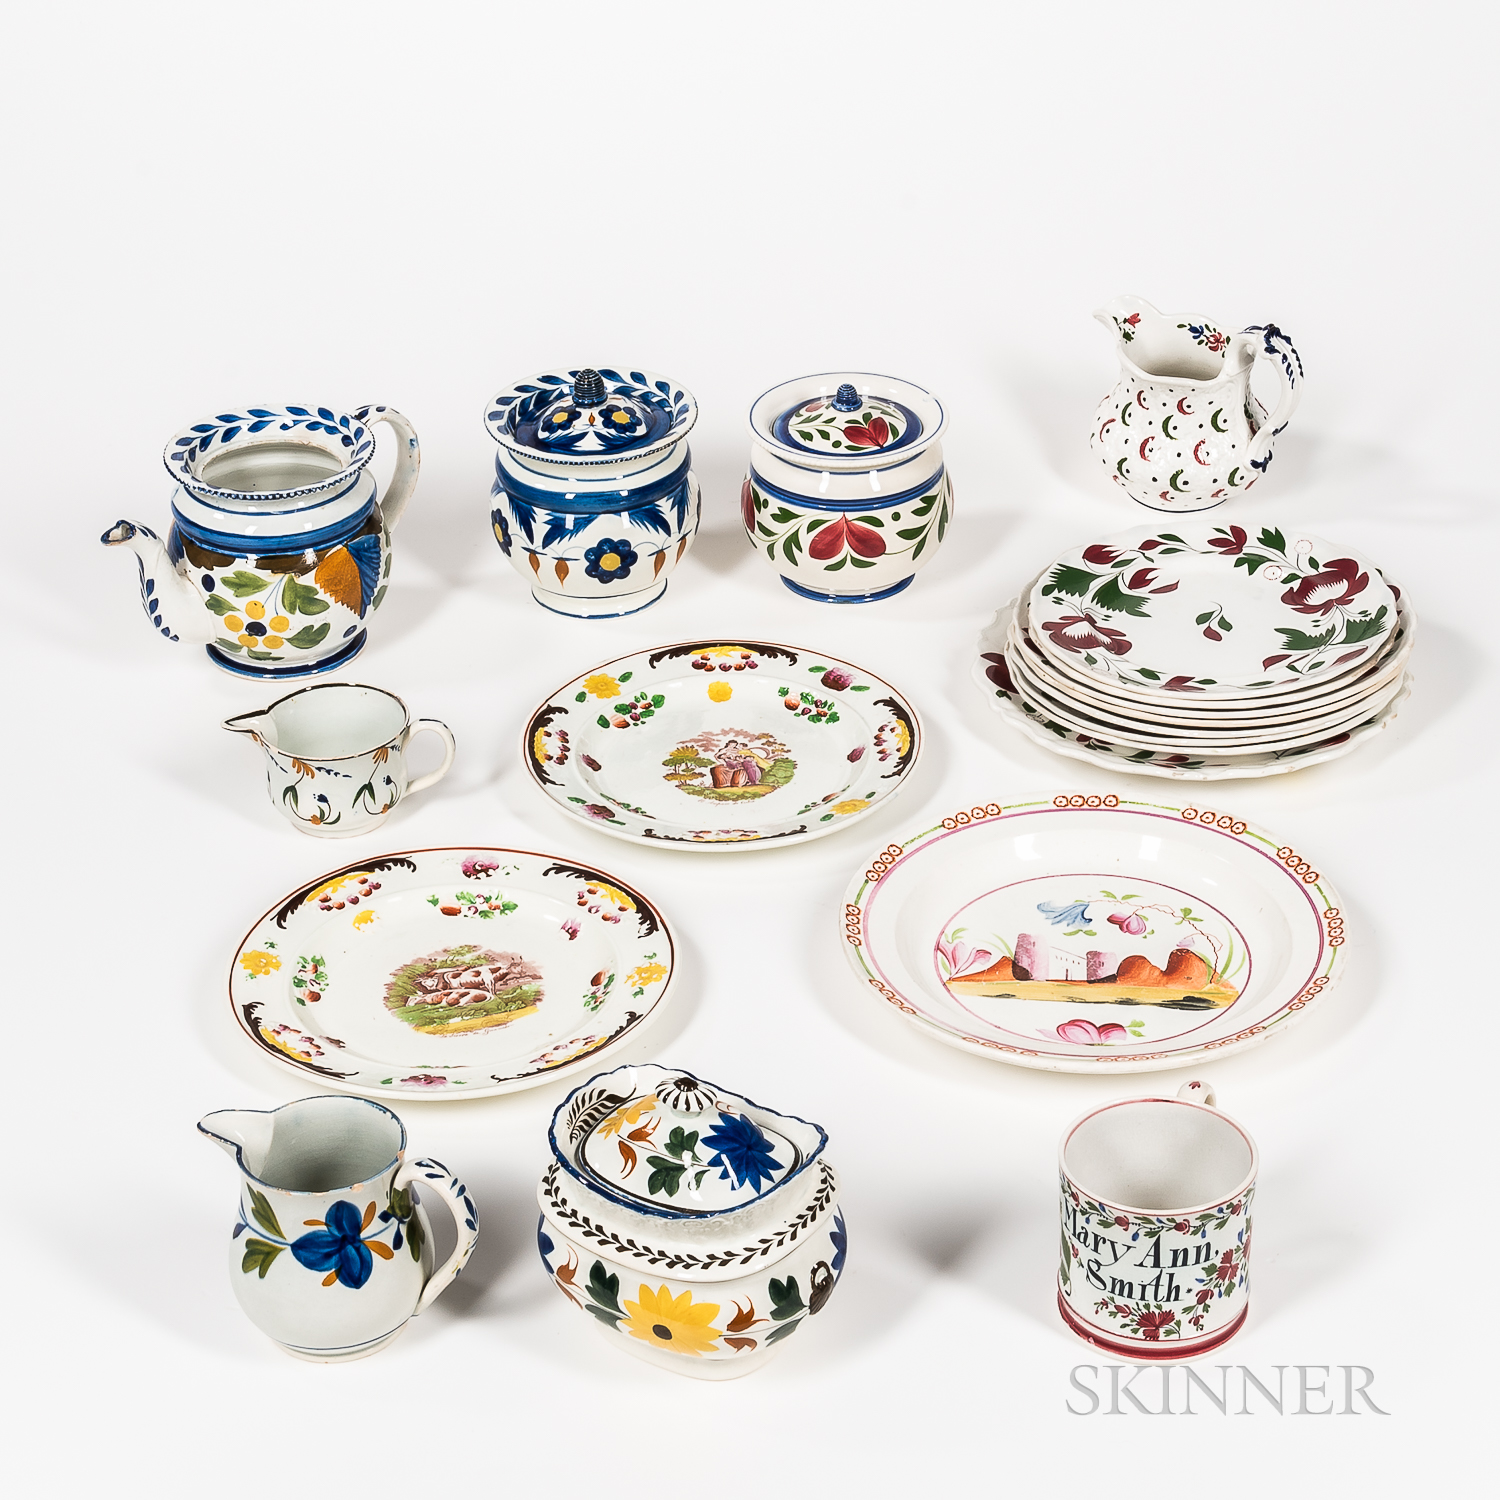 Group of Staffordshire and Pearlware Tableware Items